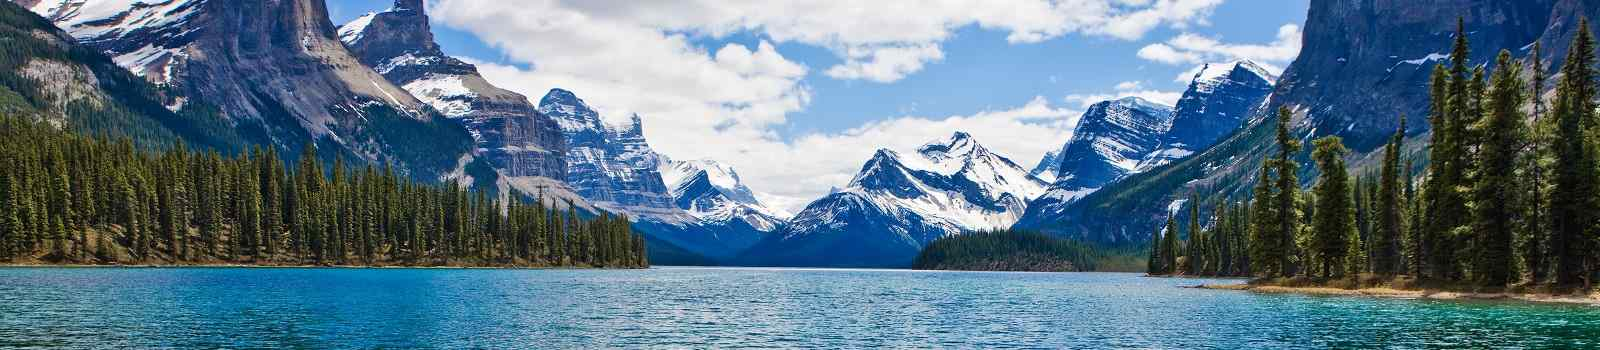 CAD-WEST-TESLA Magline Lake  Jasper National Park Alberta Canada 46772335